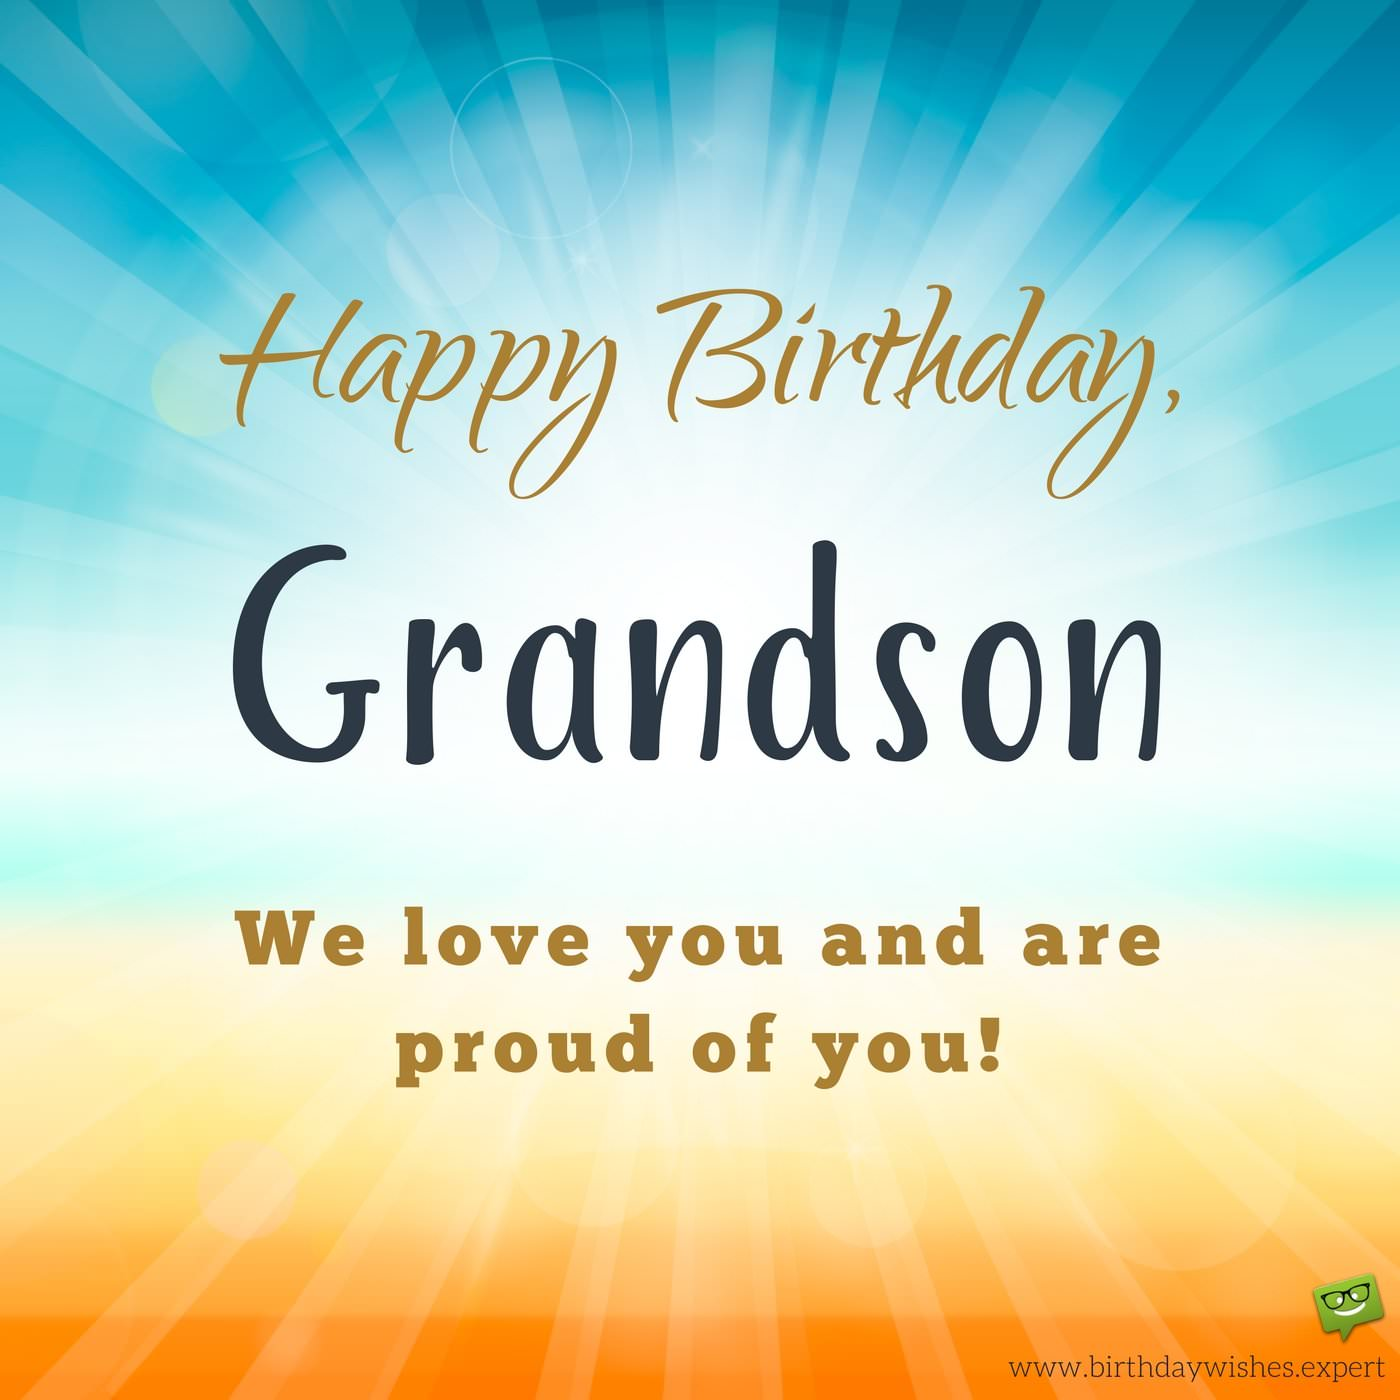 birthday message for grandson with images ; Happy-Birthday-grandson